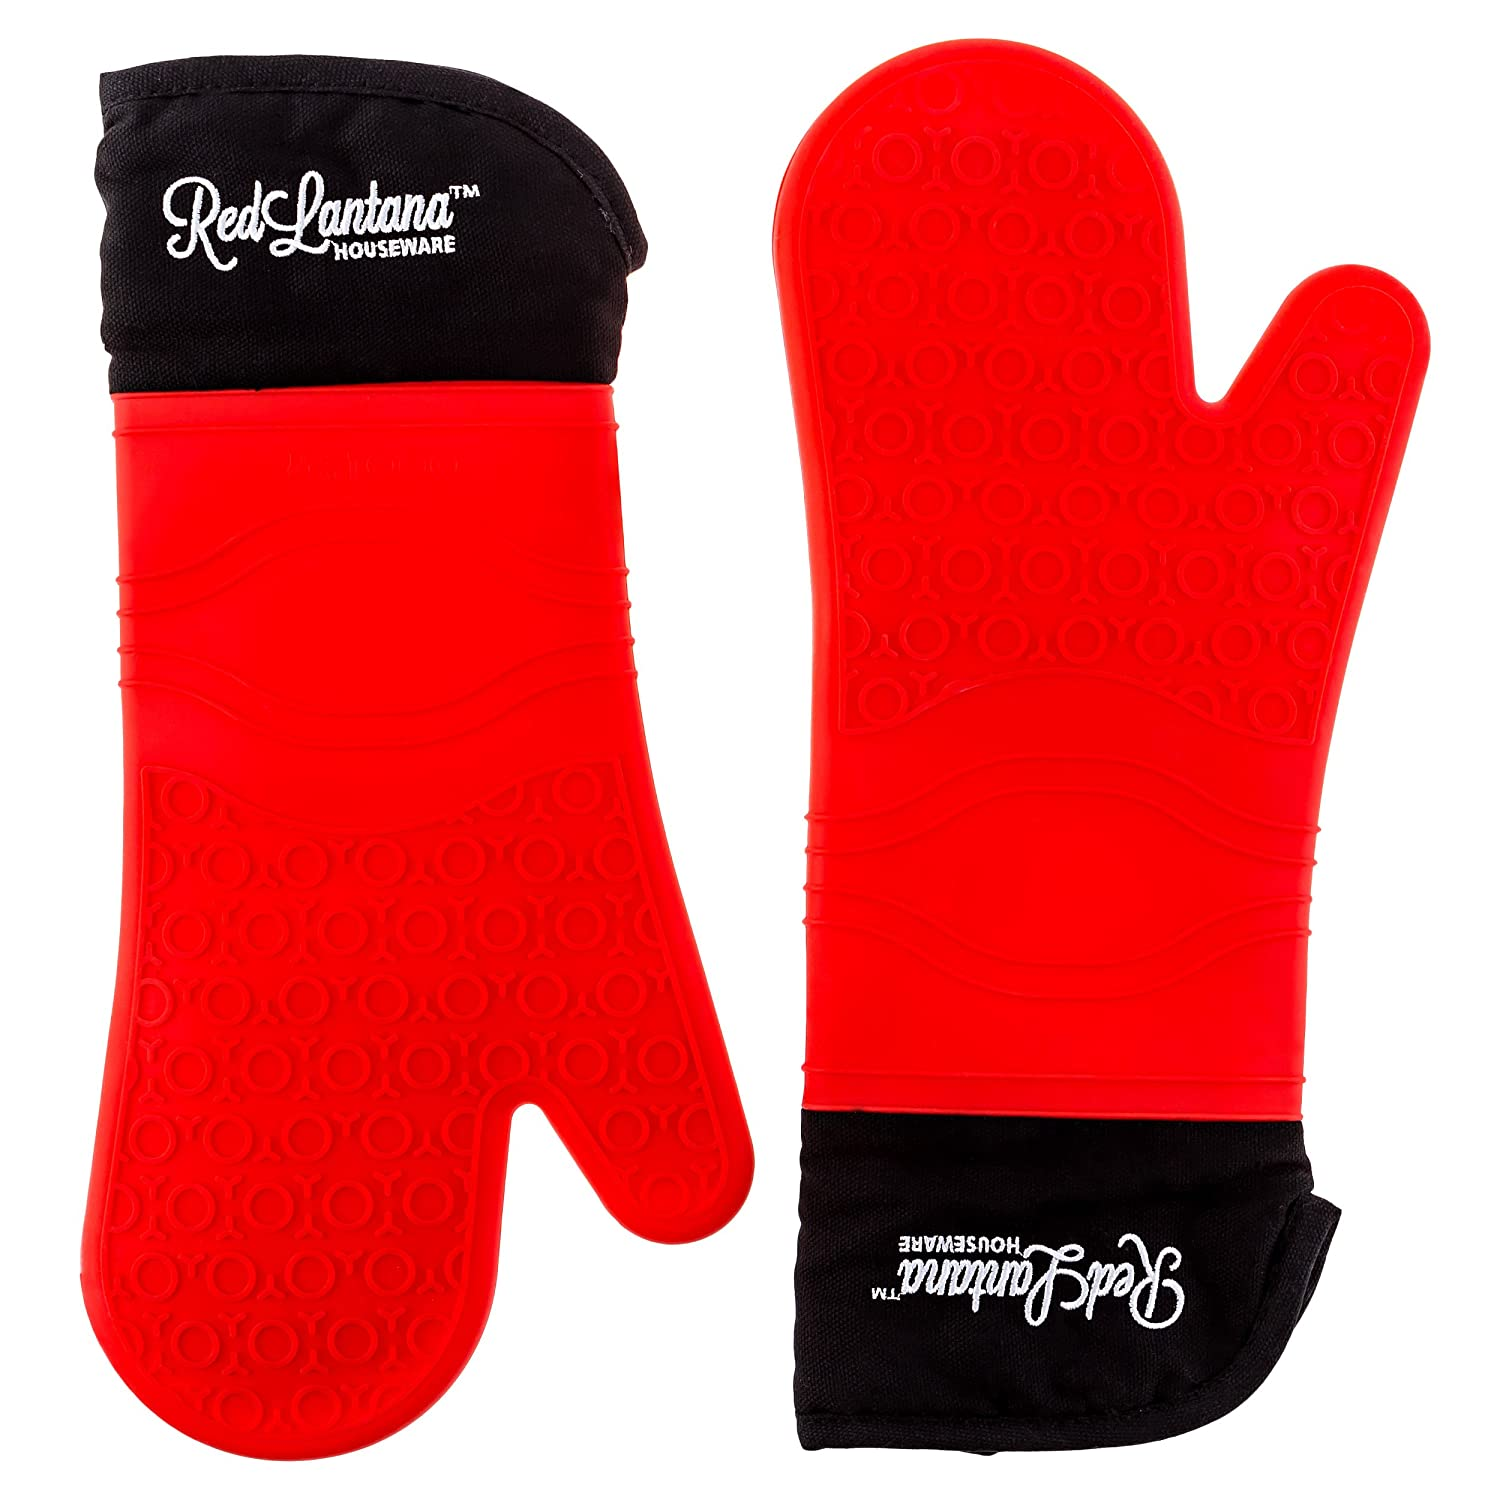 Red Lantana Silicone and Cotton Mitt Pair Review